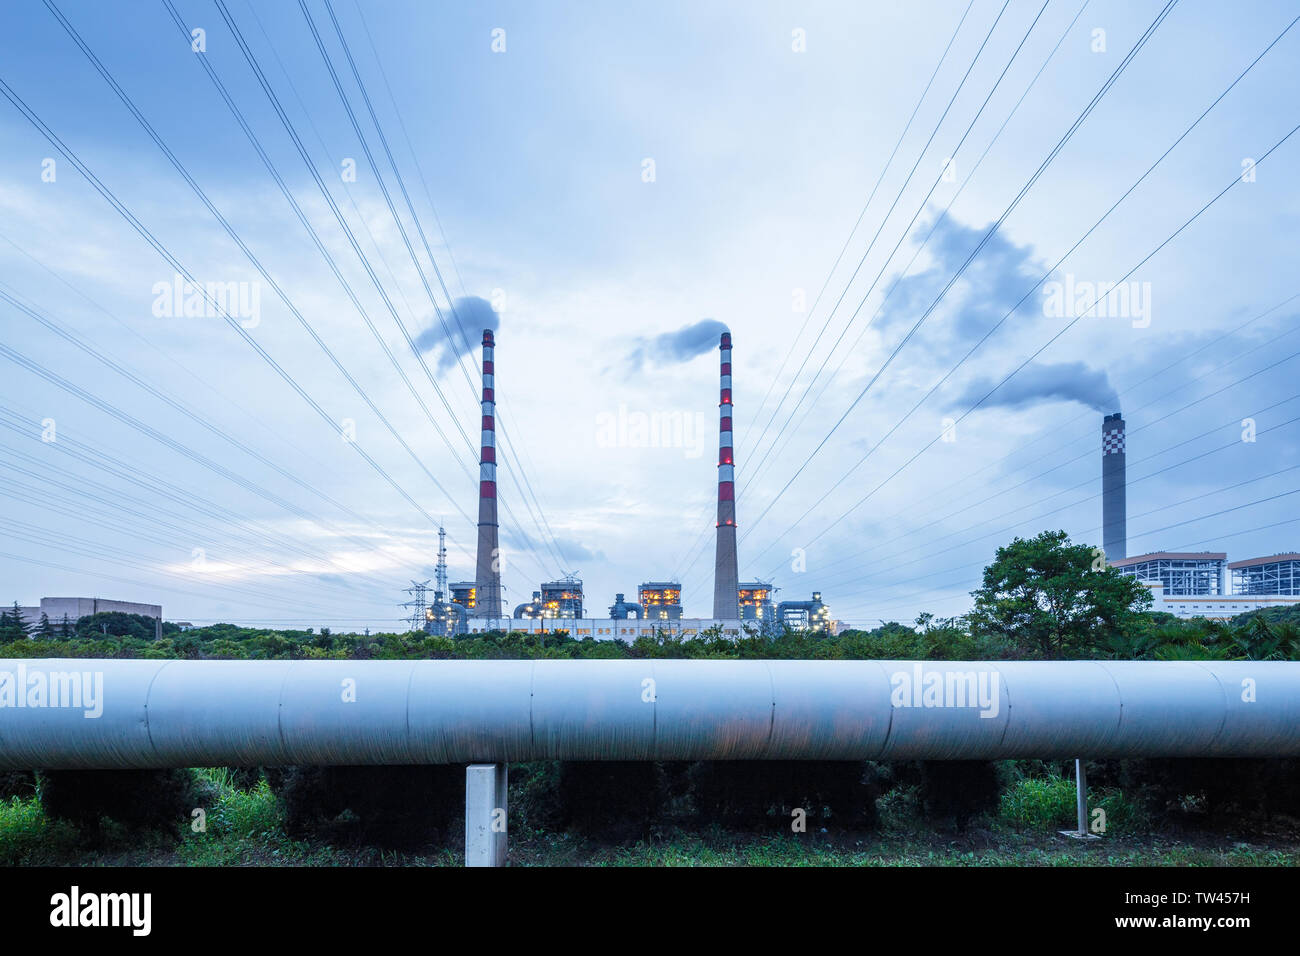 thermal power station letting off pollution at dusk - Stock Image